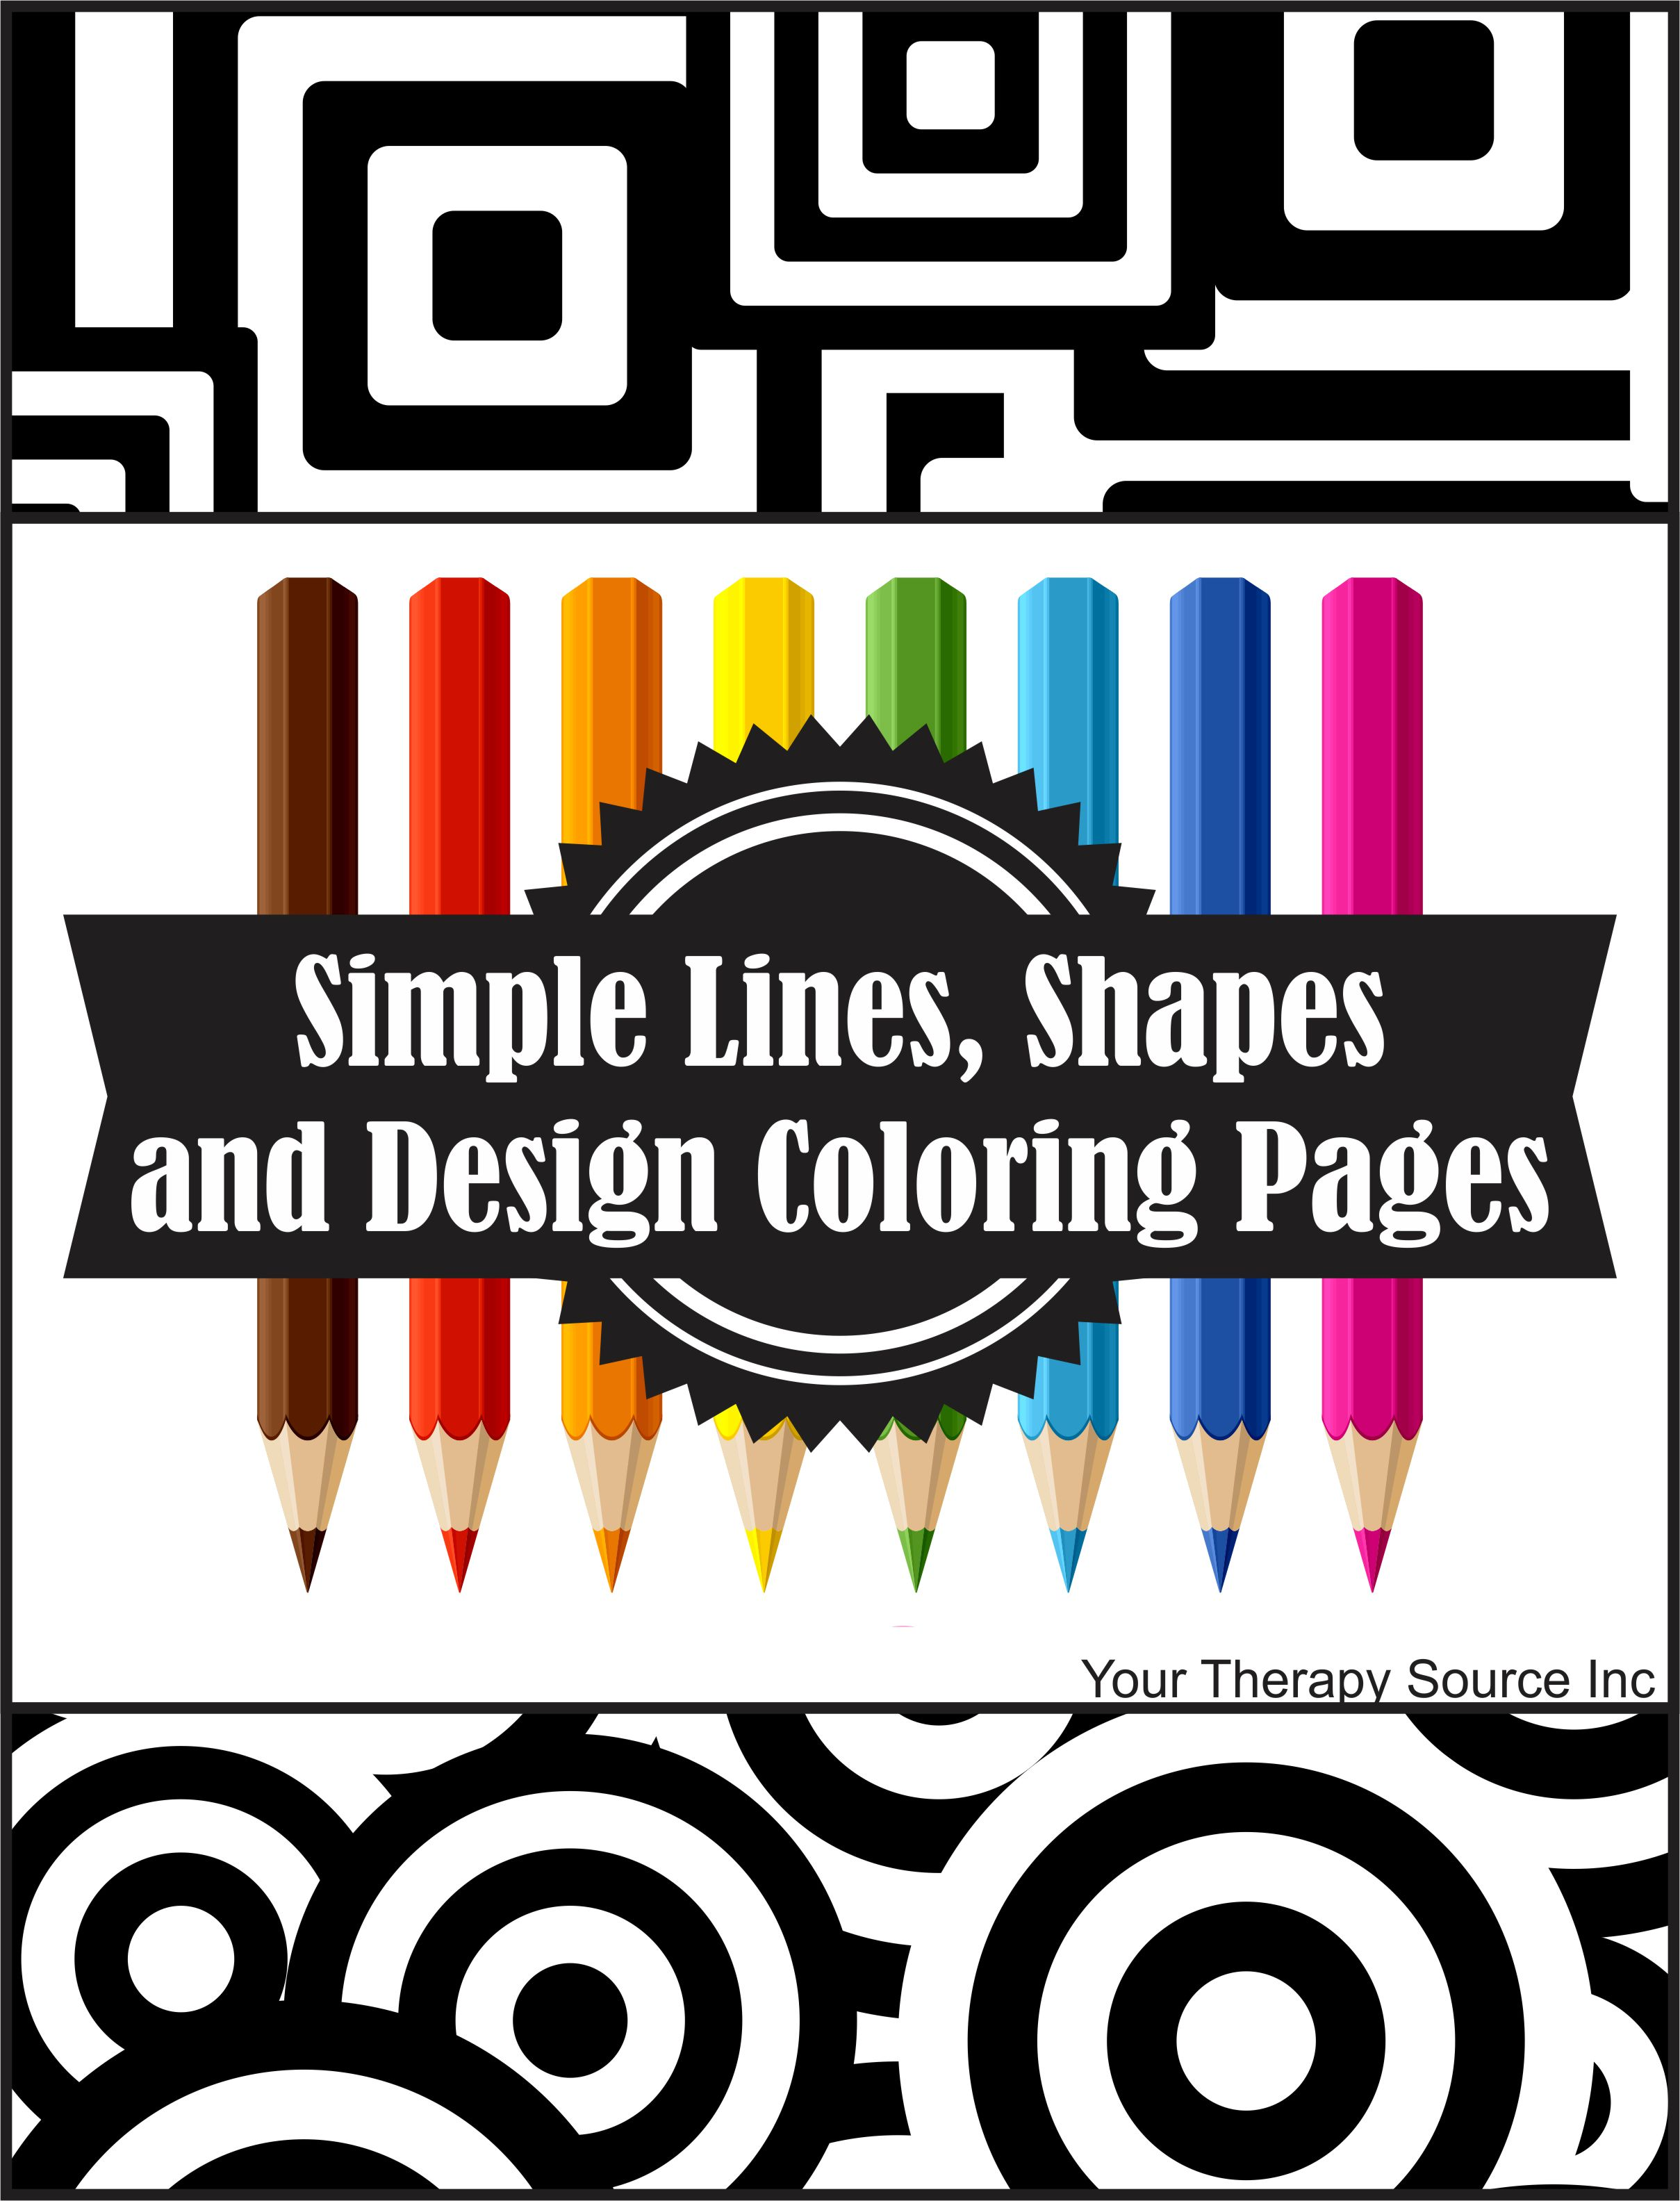 simple lines shapes and design coloring pages your therapy source - Simple Therapeutic Coloring Pages